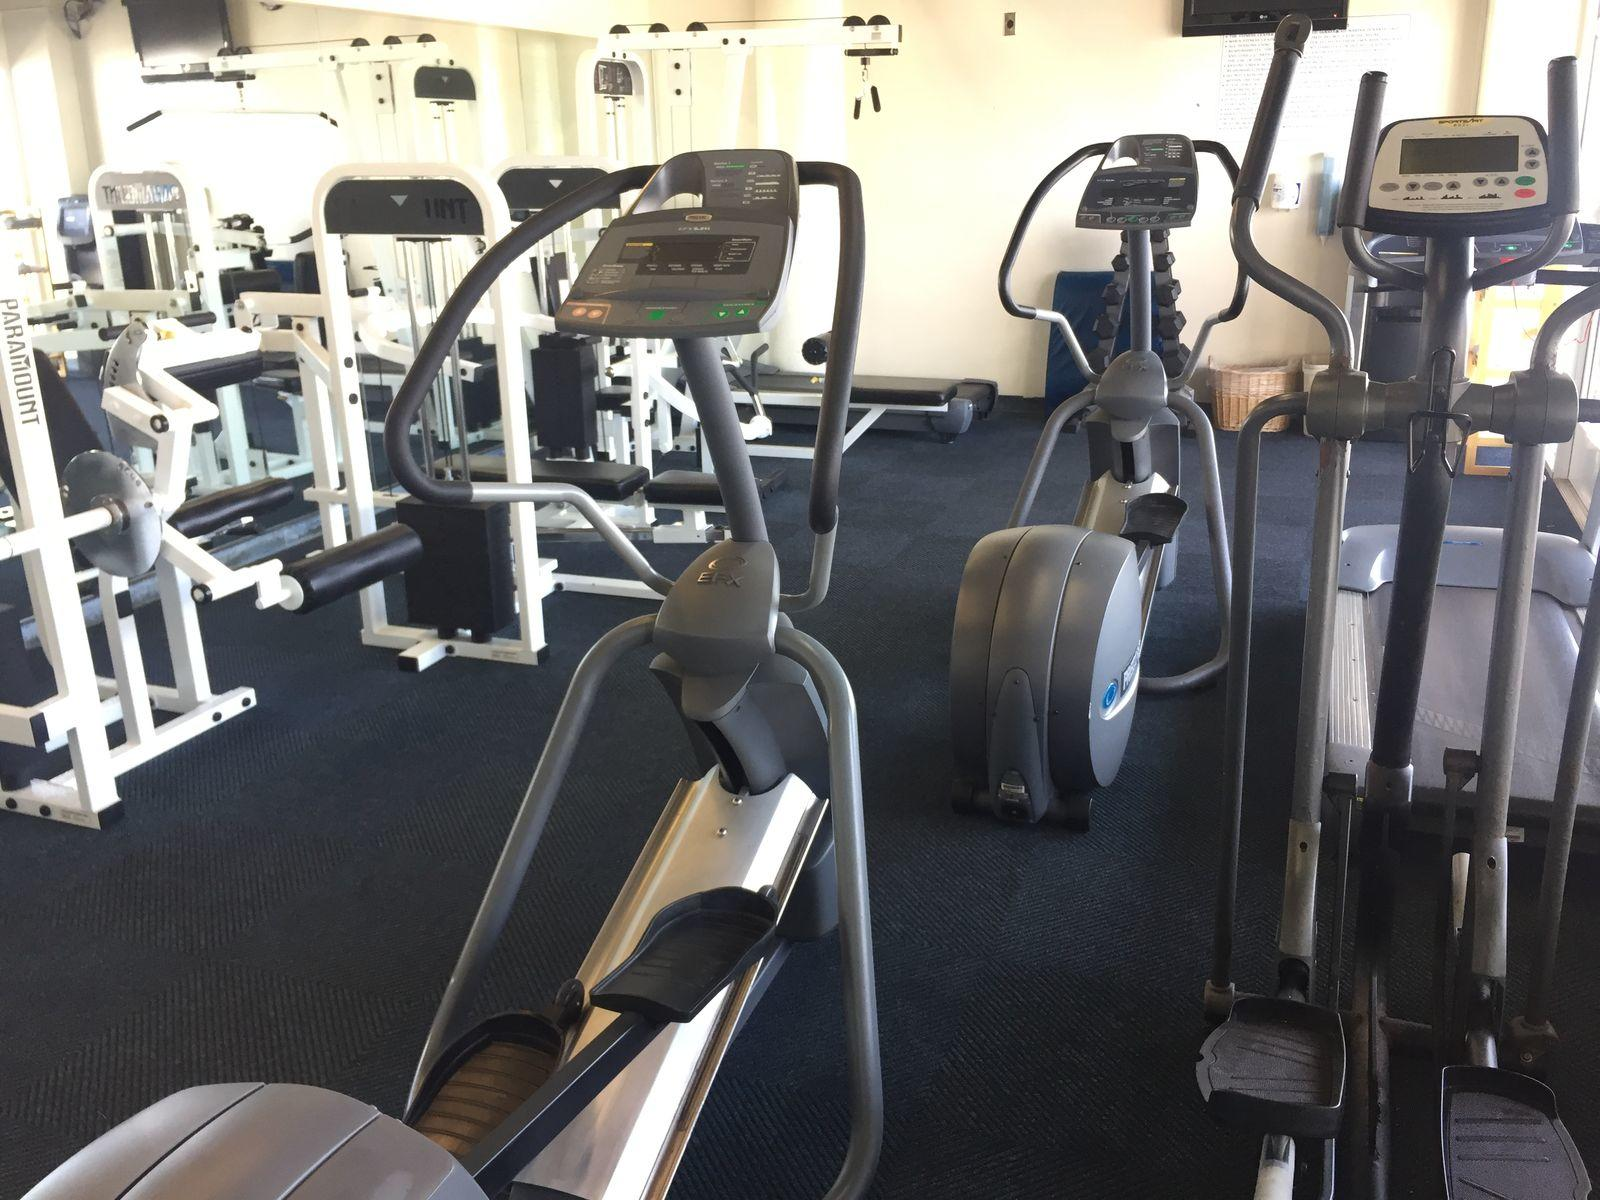 Exercise machines in the hotel gym at Bay Club Hotel